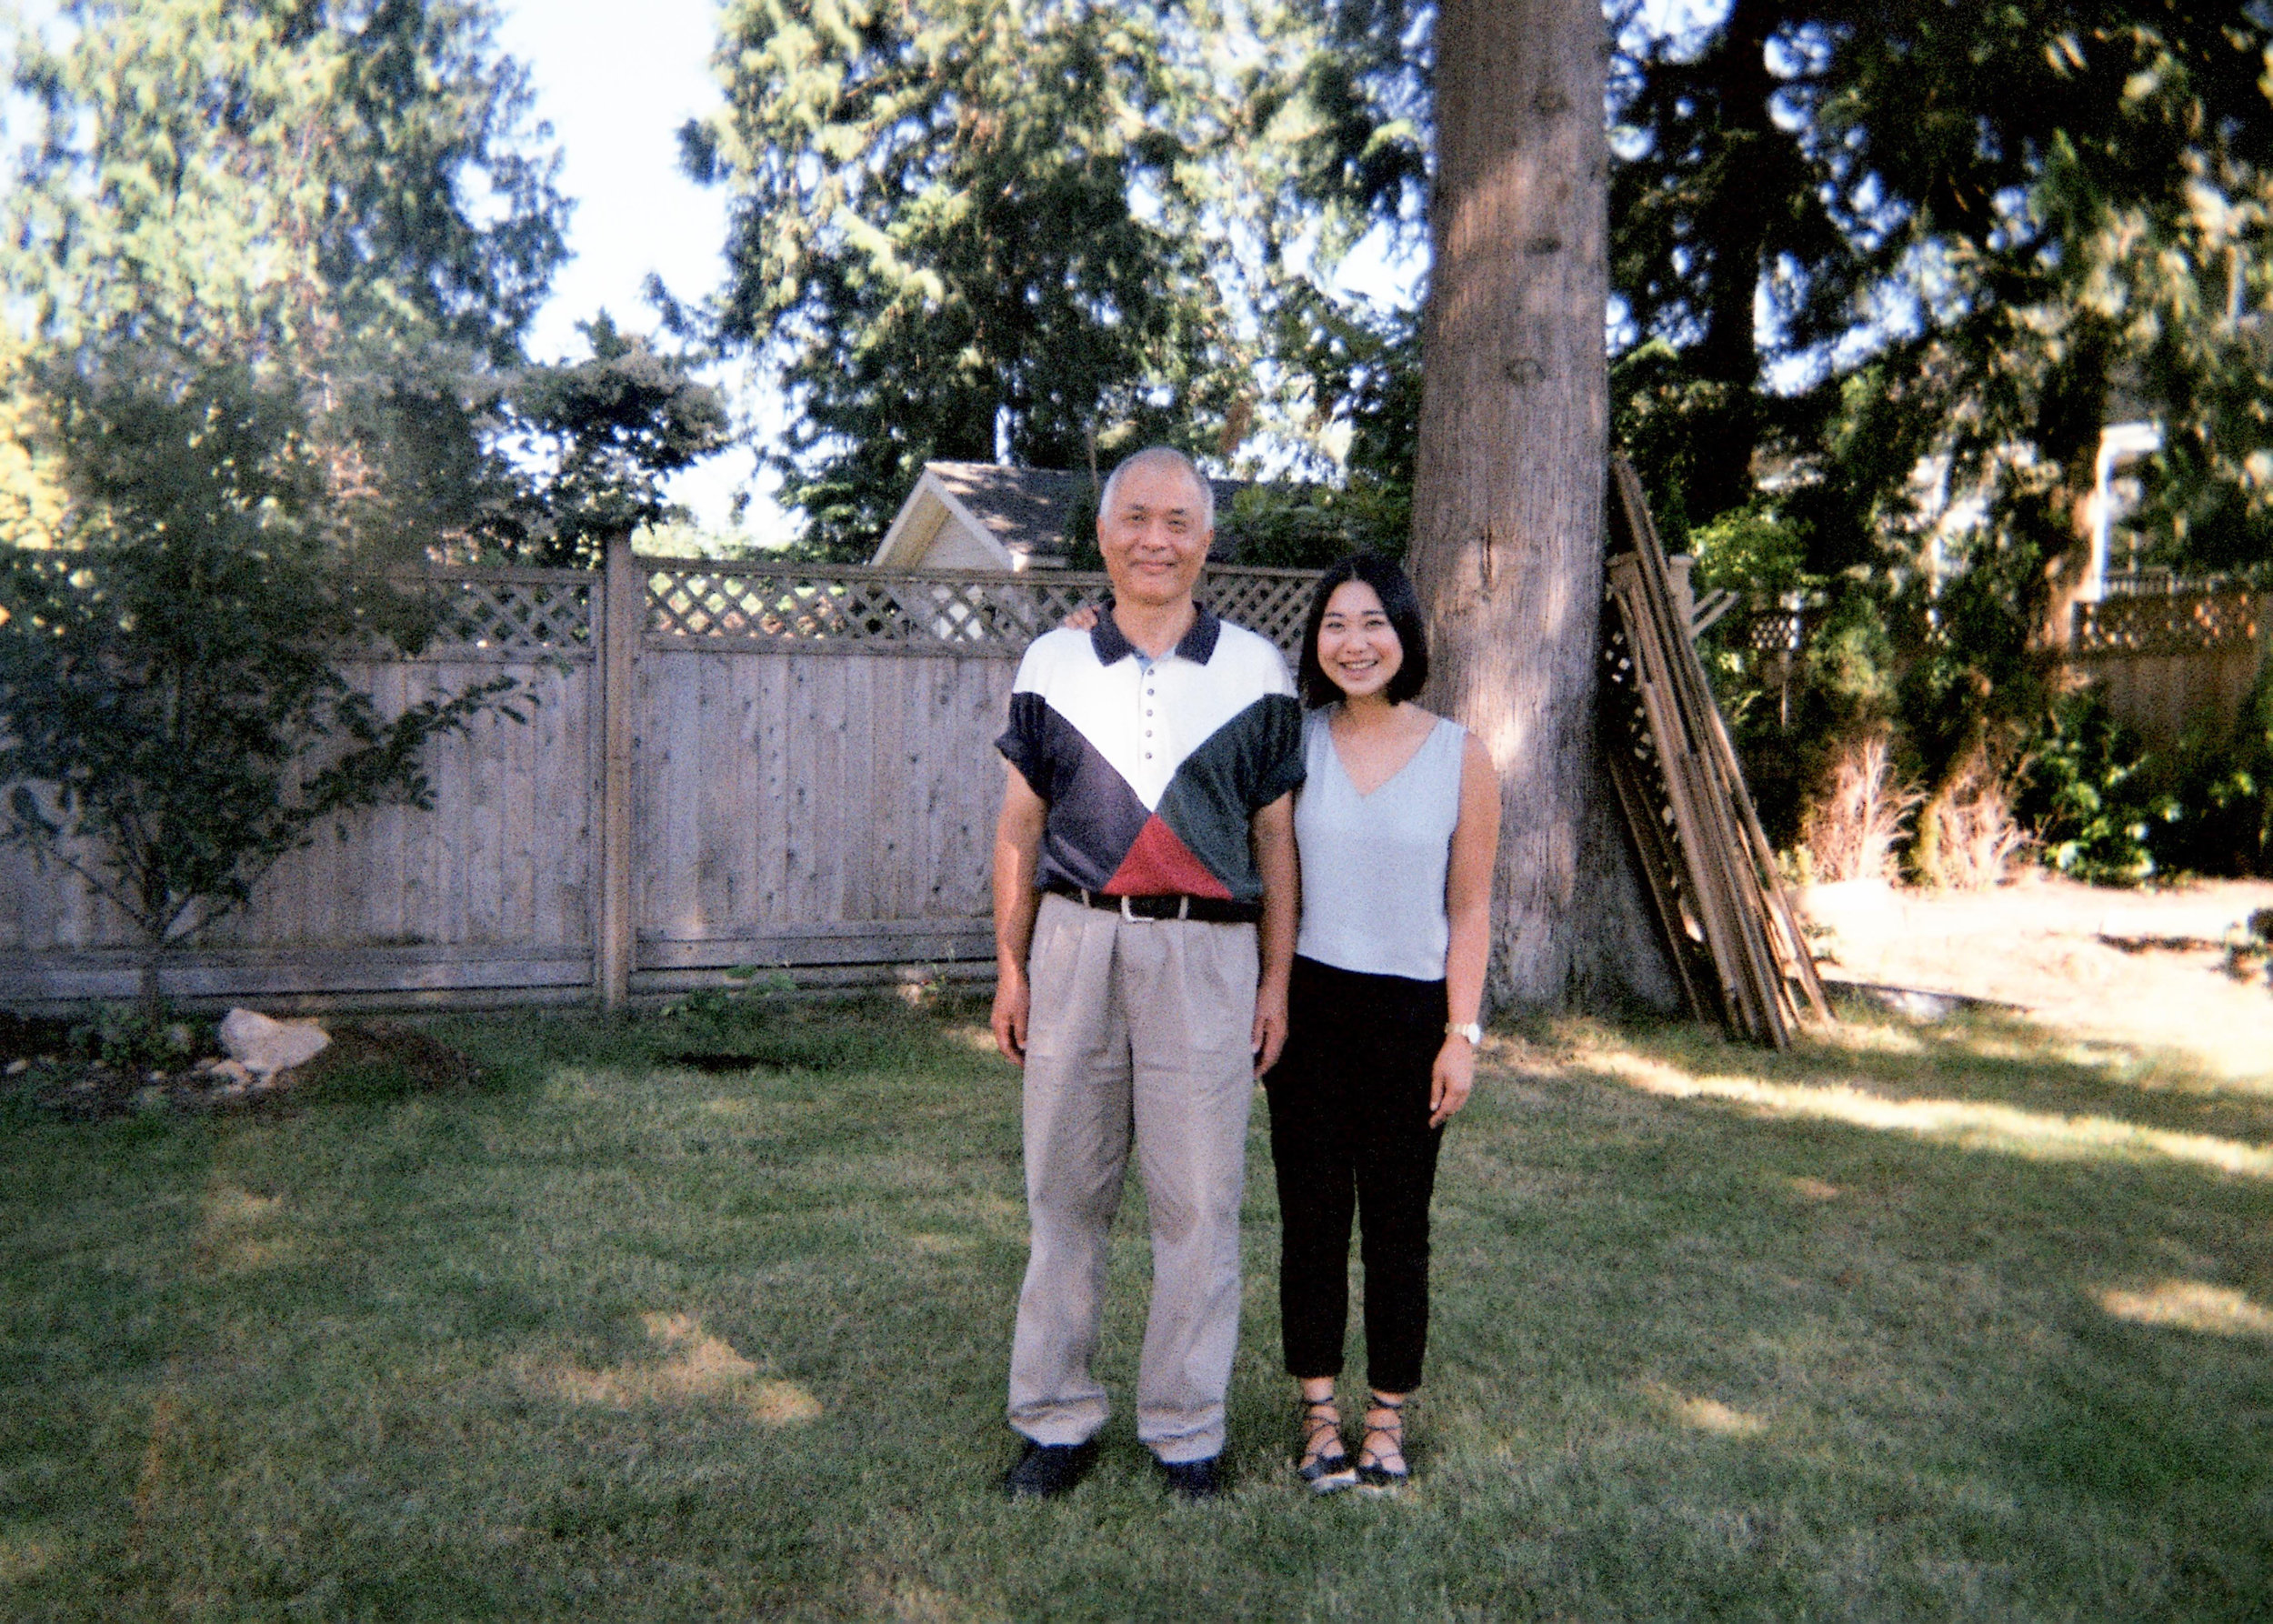 A photo of me and Papa in his yard. Shot on film in 2017.